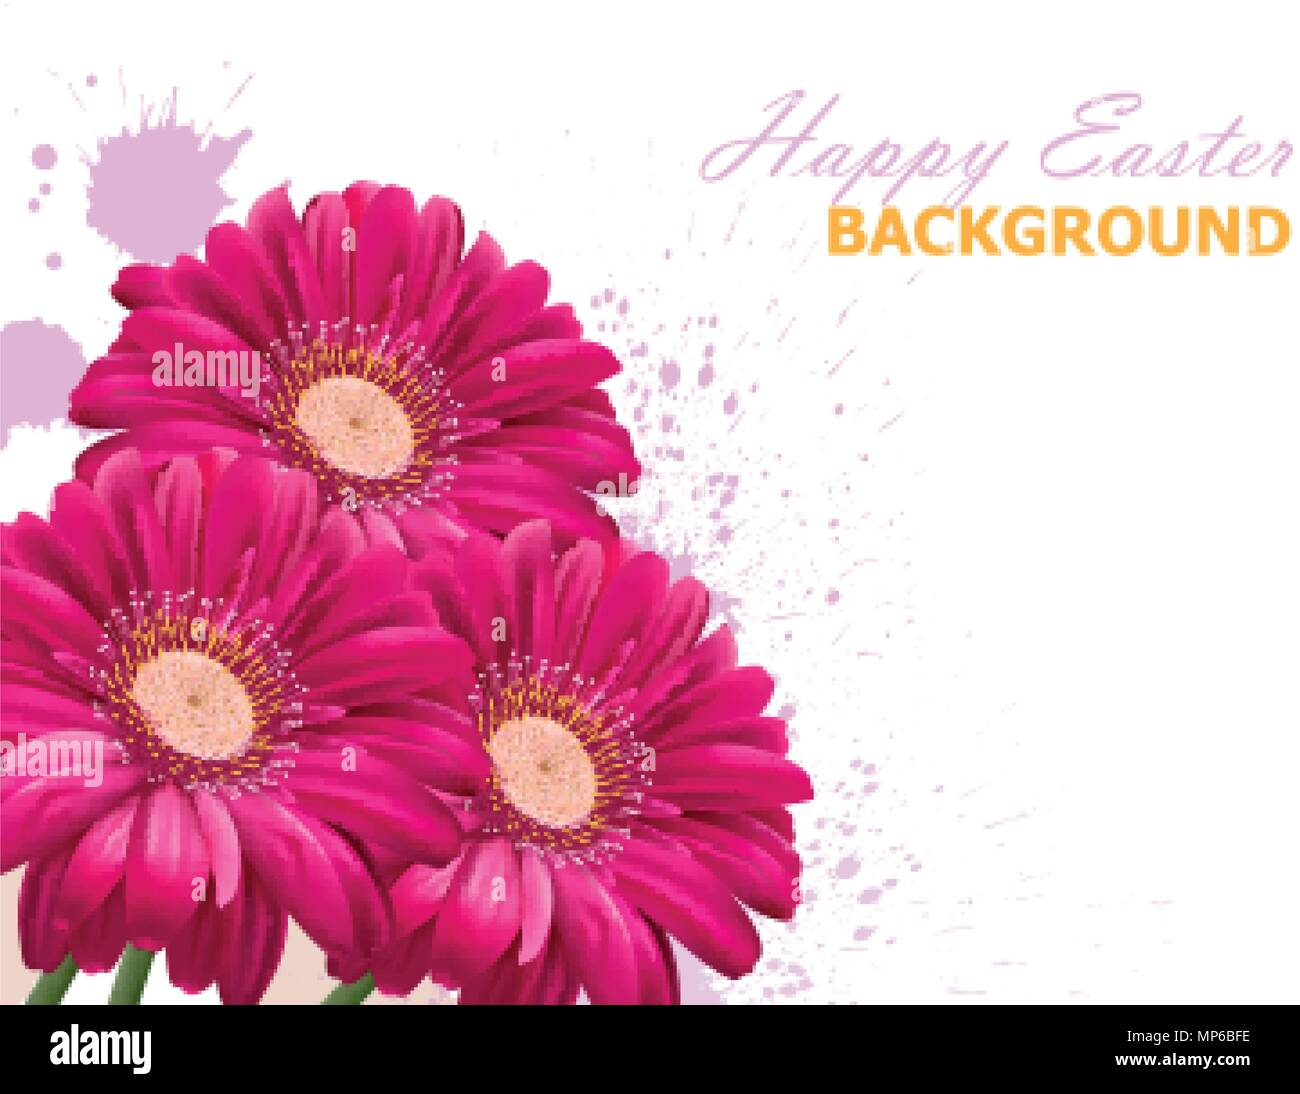 Happy Easter Daisy Flowers Bouquet Card Spring Floral Beauty